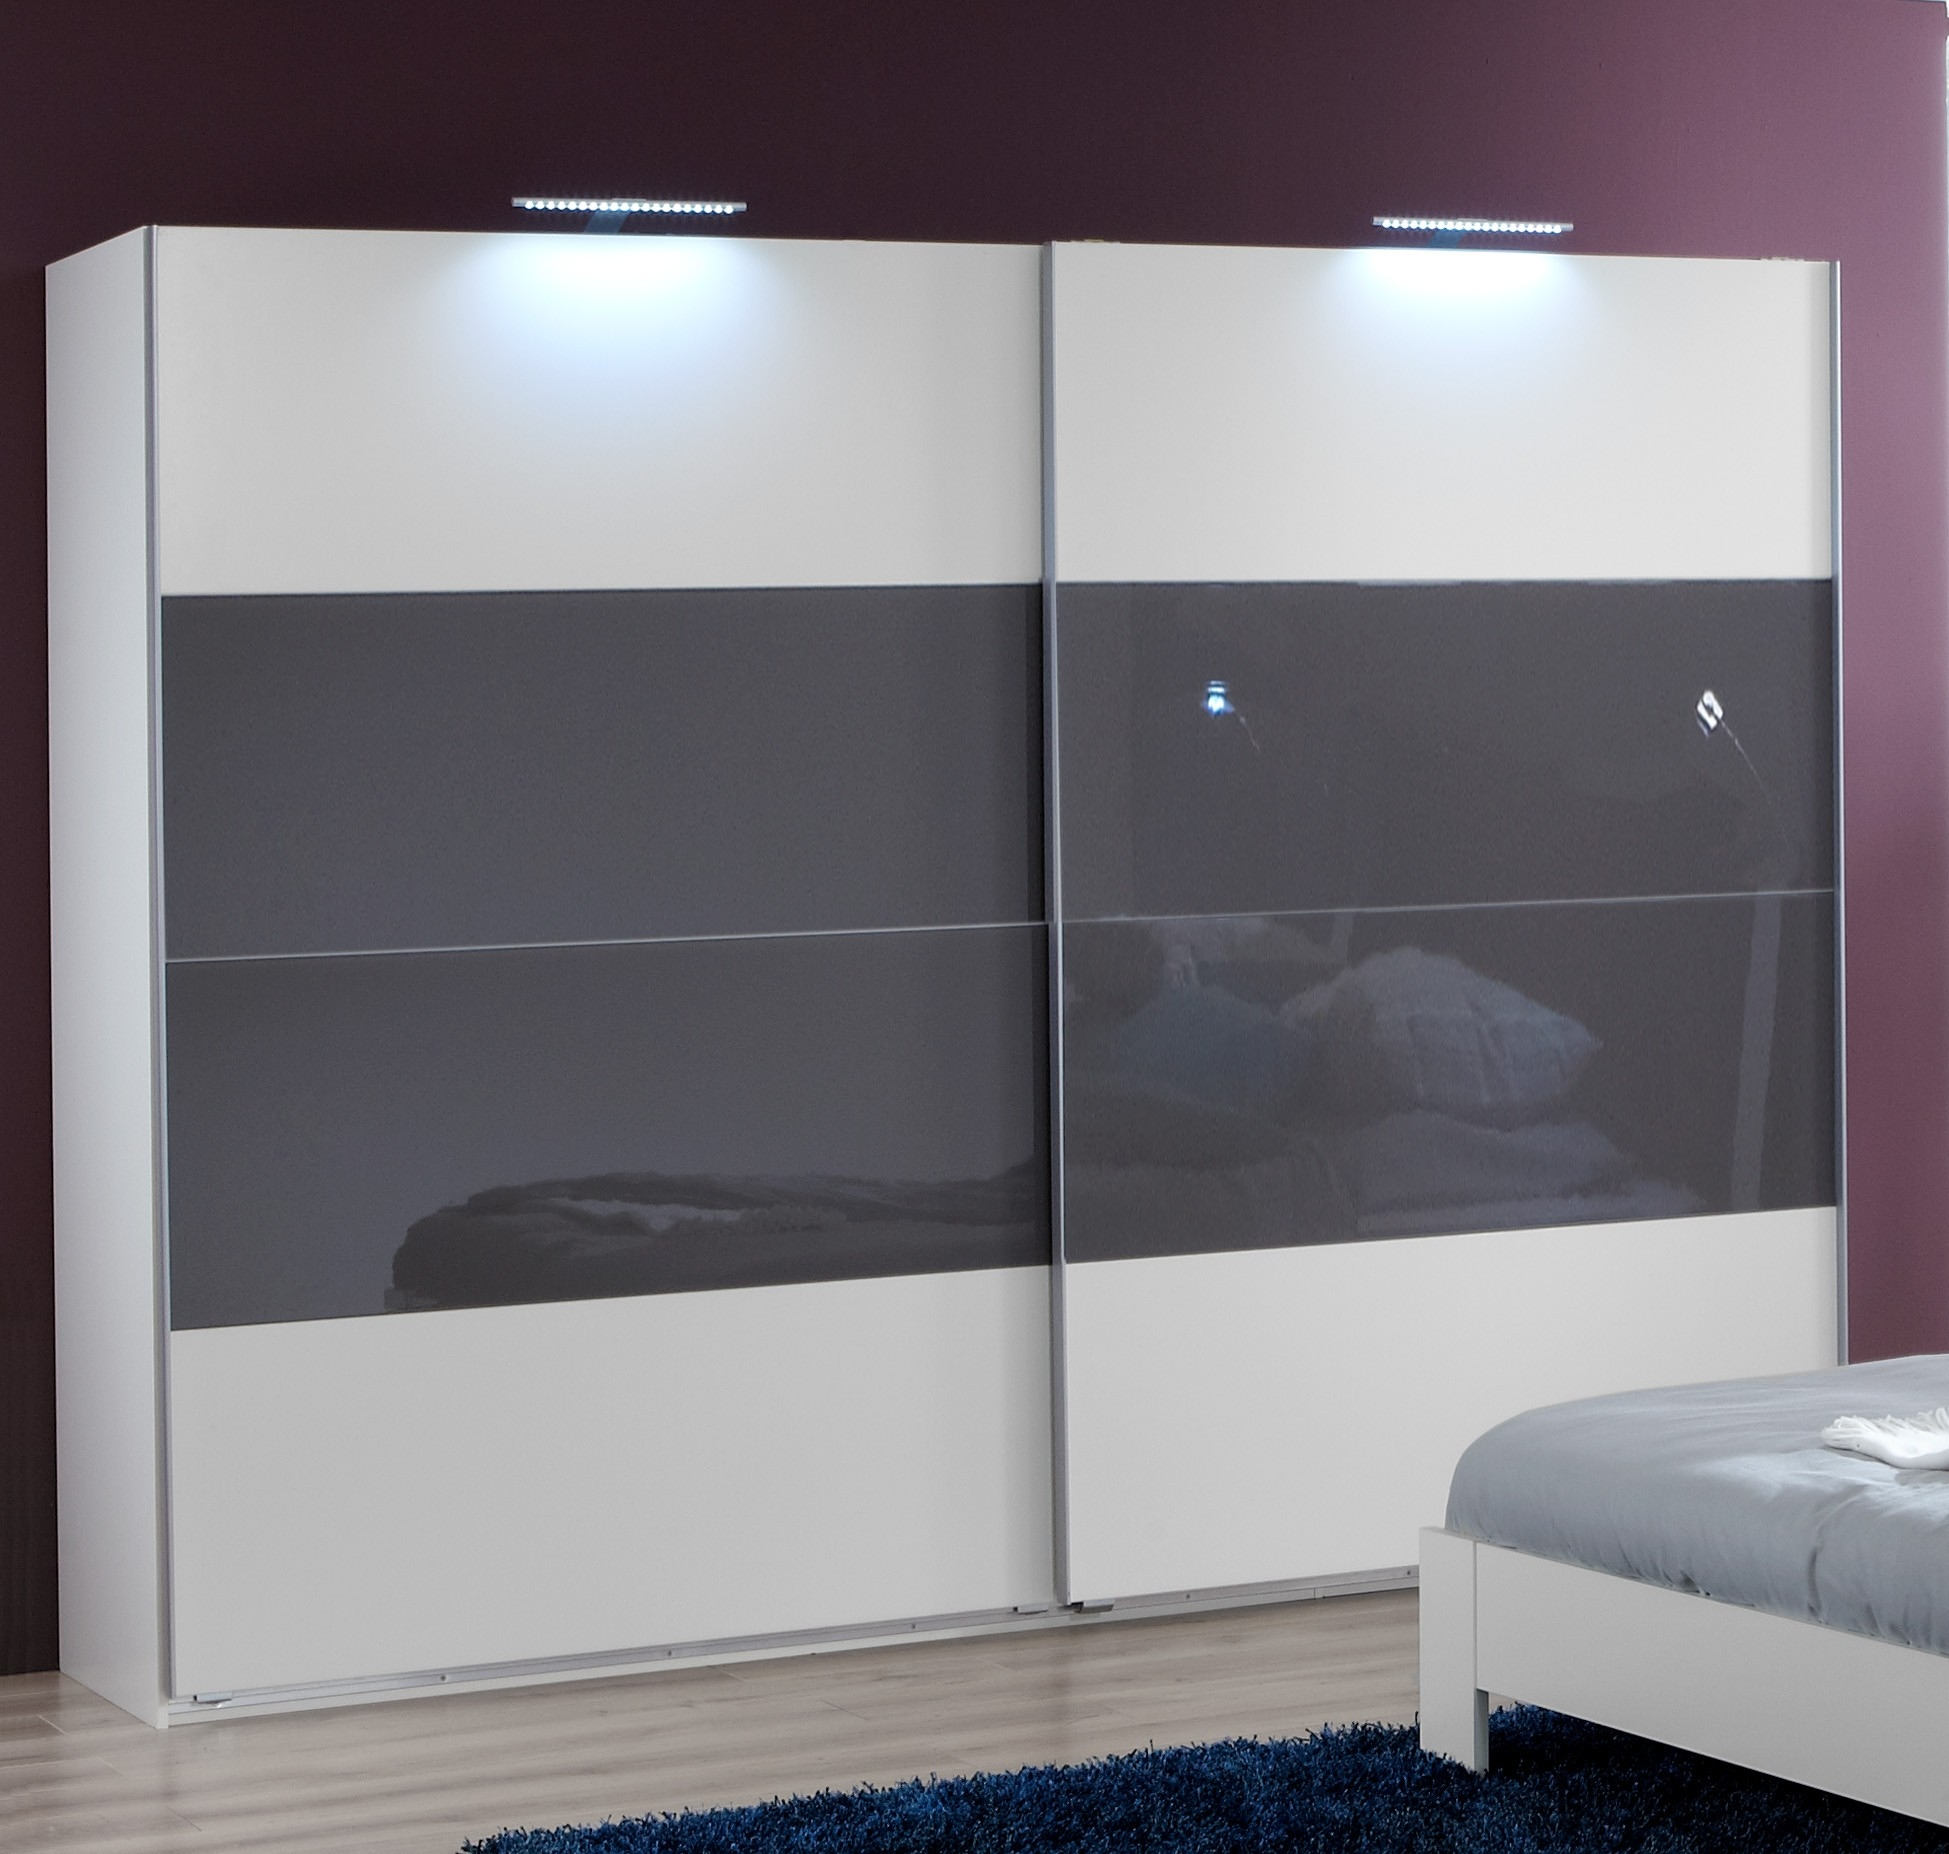 Modern Sliding Door Wardrobes Free Standing Sliding Wardrobes Throughout Sliding Door Wardrobes (Image 11 of 25)